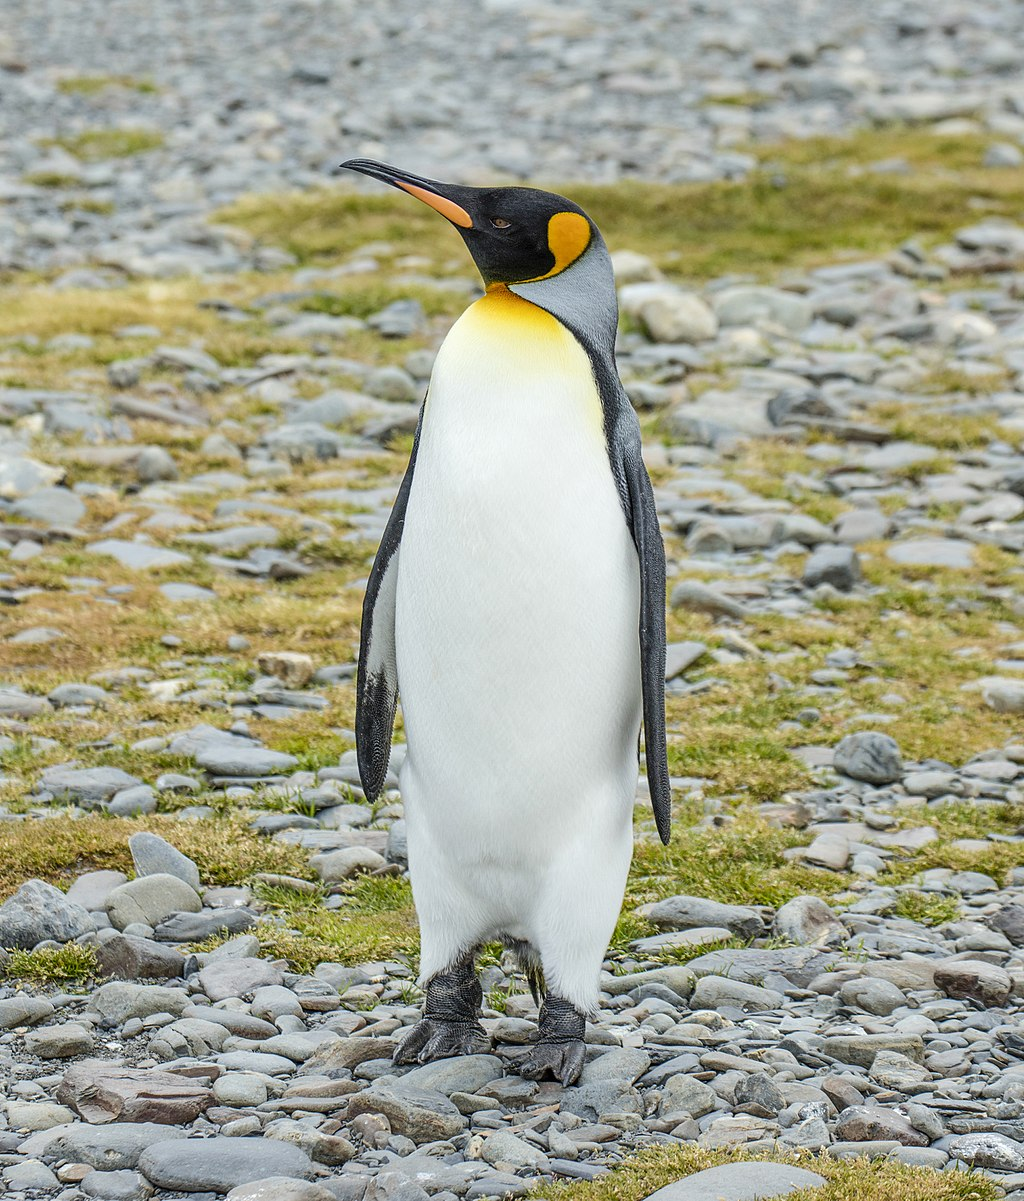 SGI-2016-South Georgia (Fortuna Bay)–King penguin (Aptenodytes patagonicus) 04